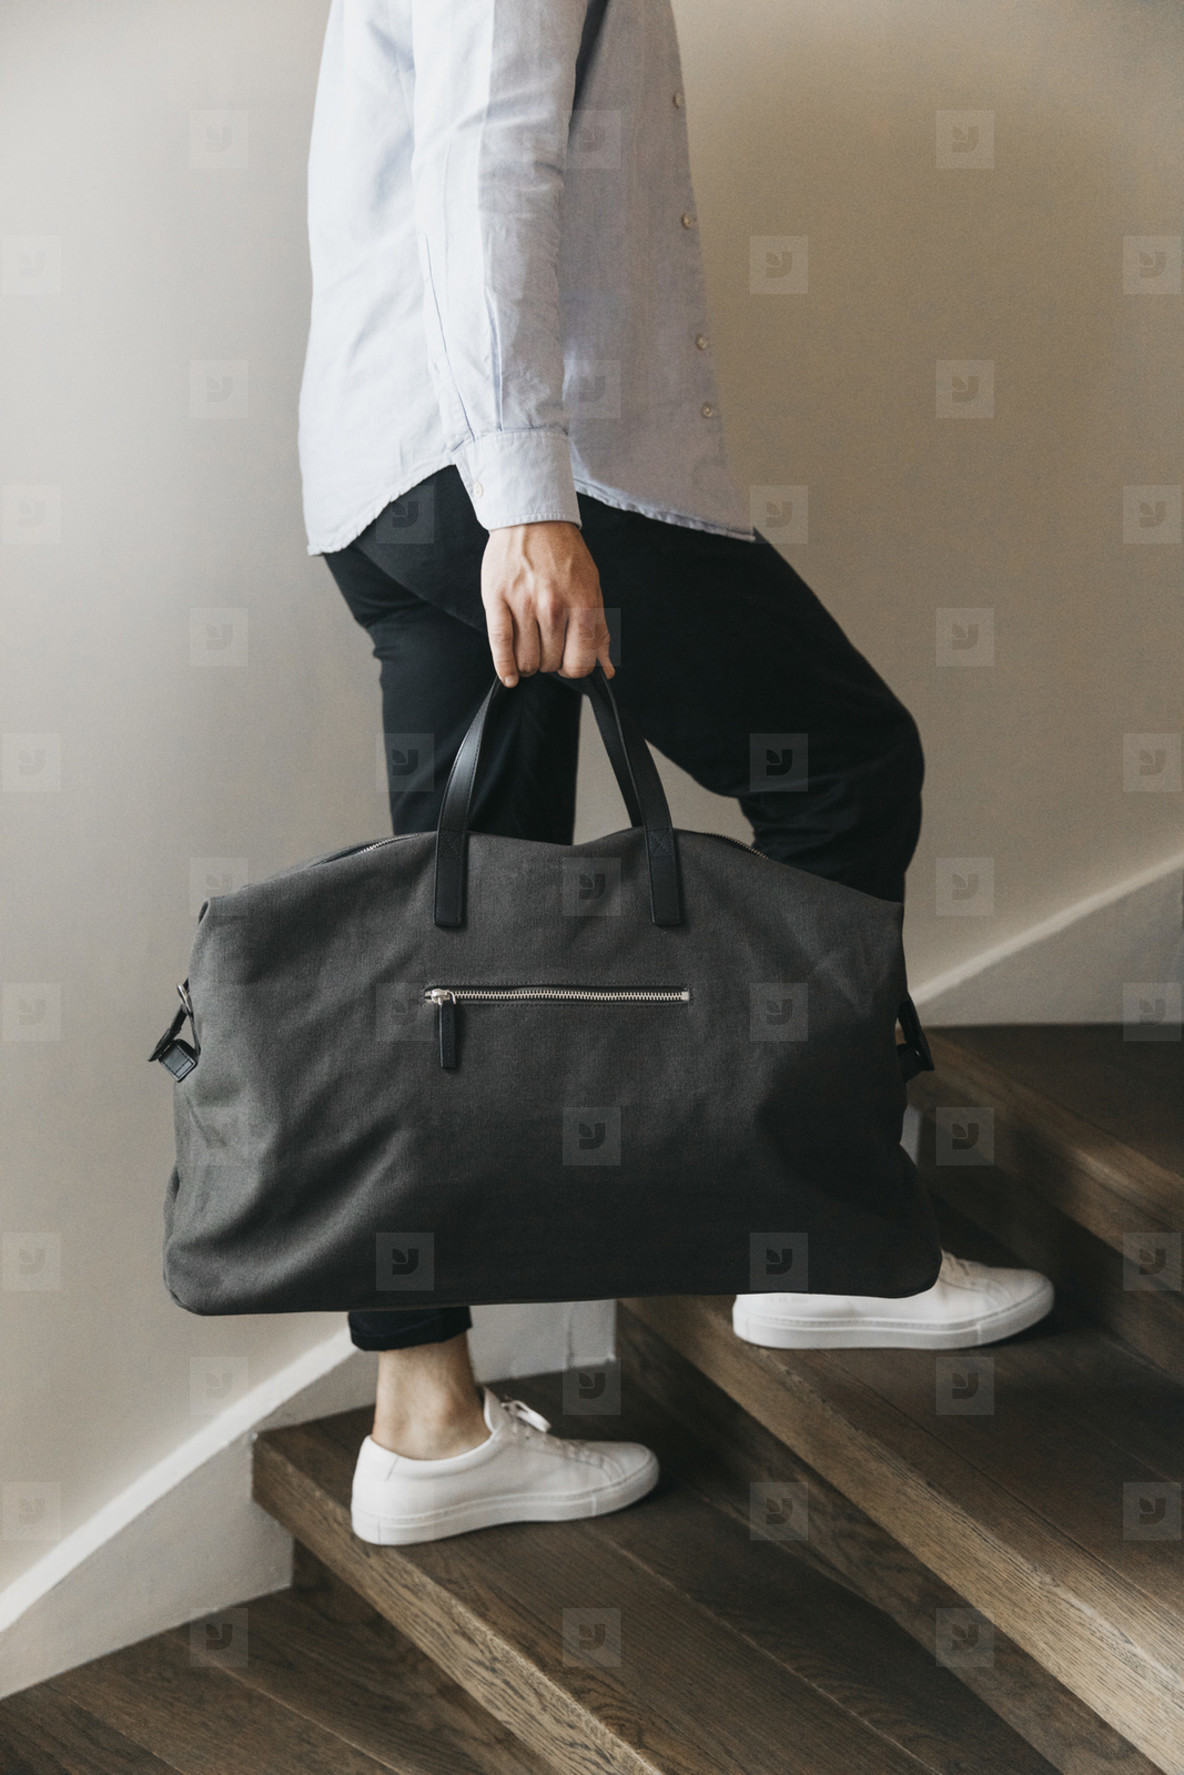 Man with duffel bag climbing wood stairs